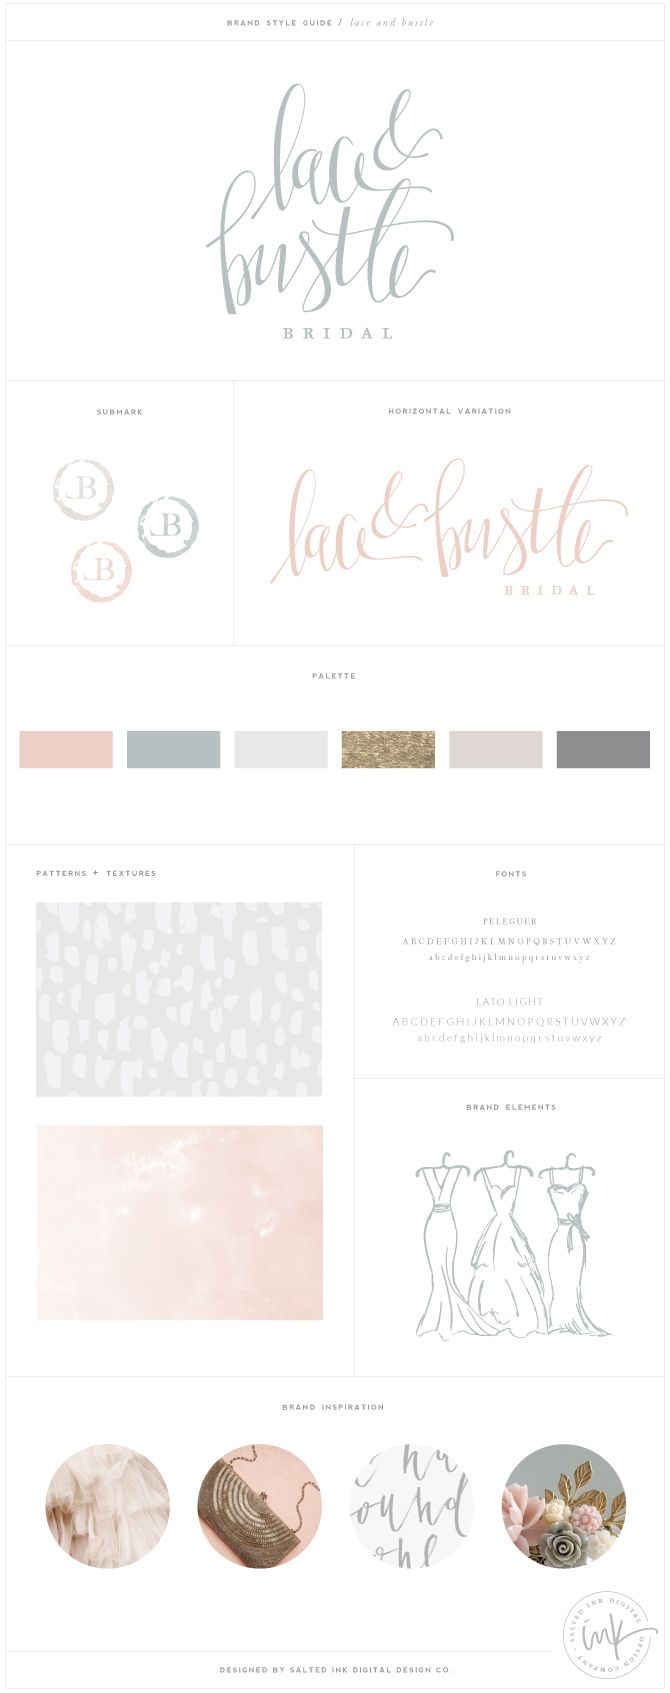 Brand Launch: Lace & Bustle Bridal | Brand design by Salted Ink | Hand Lettered, Modern Calligraphy, Brush Pen, Hand Drawn Logo, Watercolor, Gold Foil | www.saltedink.com